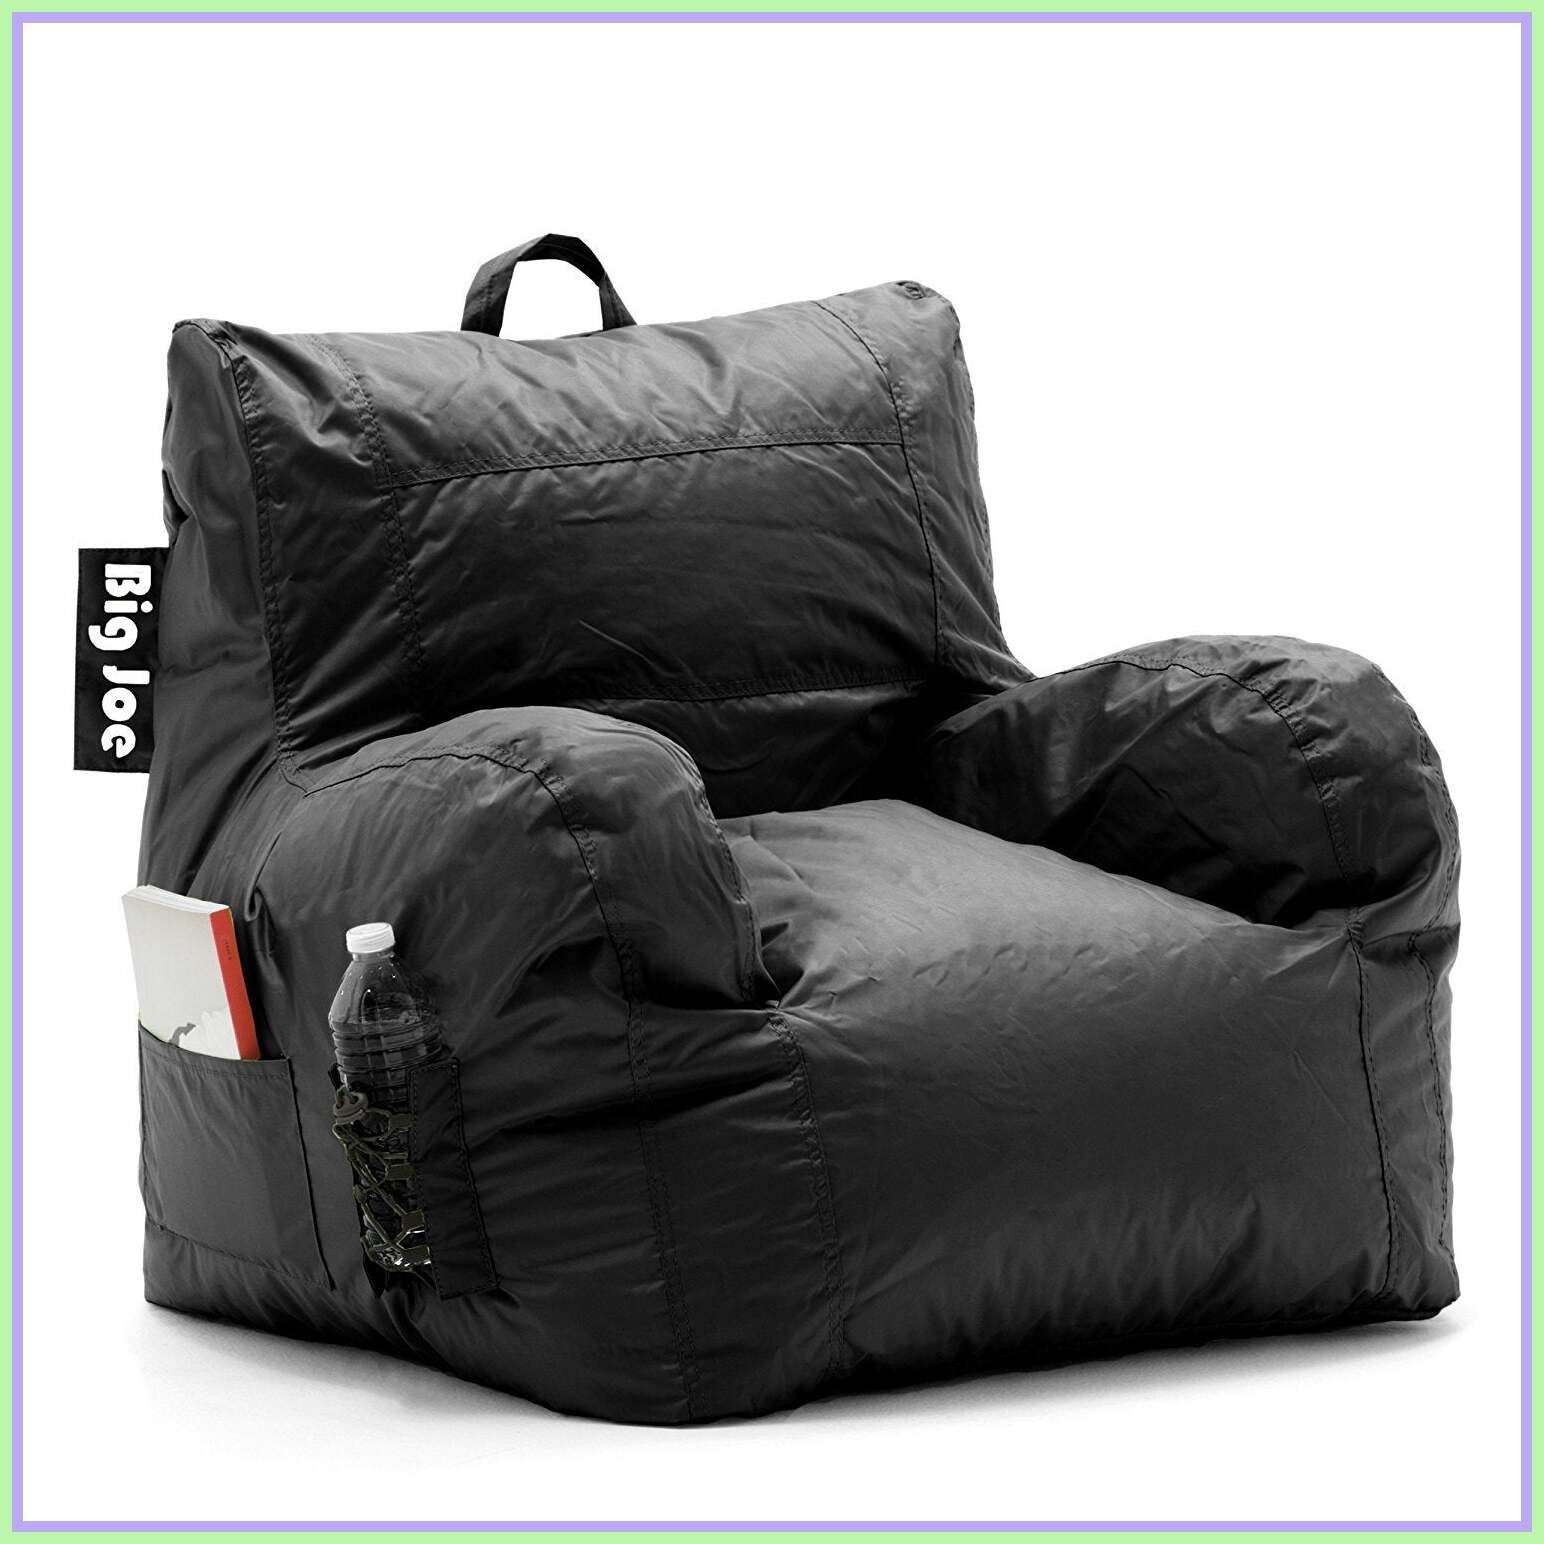 Pin On Bean Bag Chairs For Adults Memory Foam